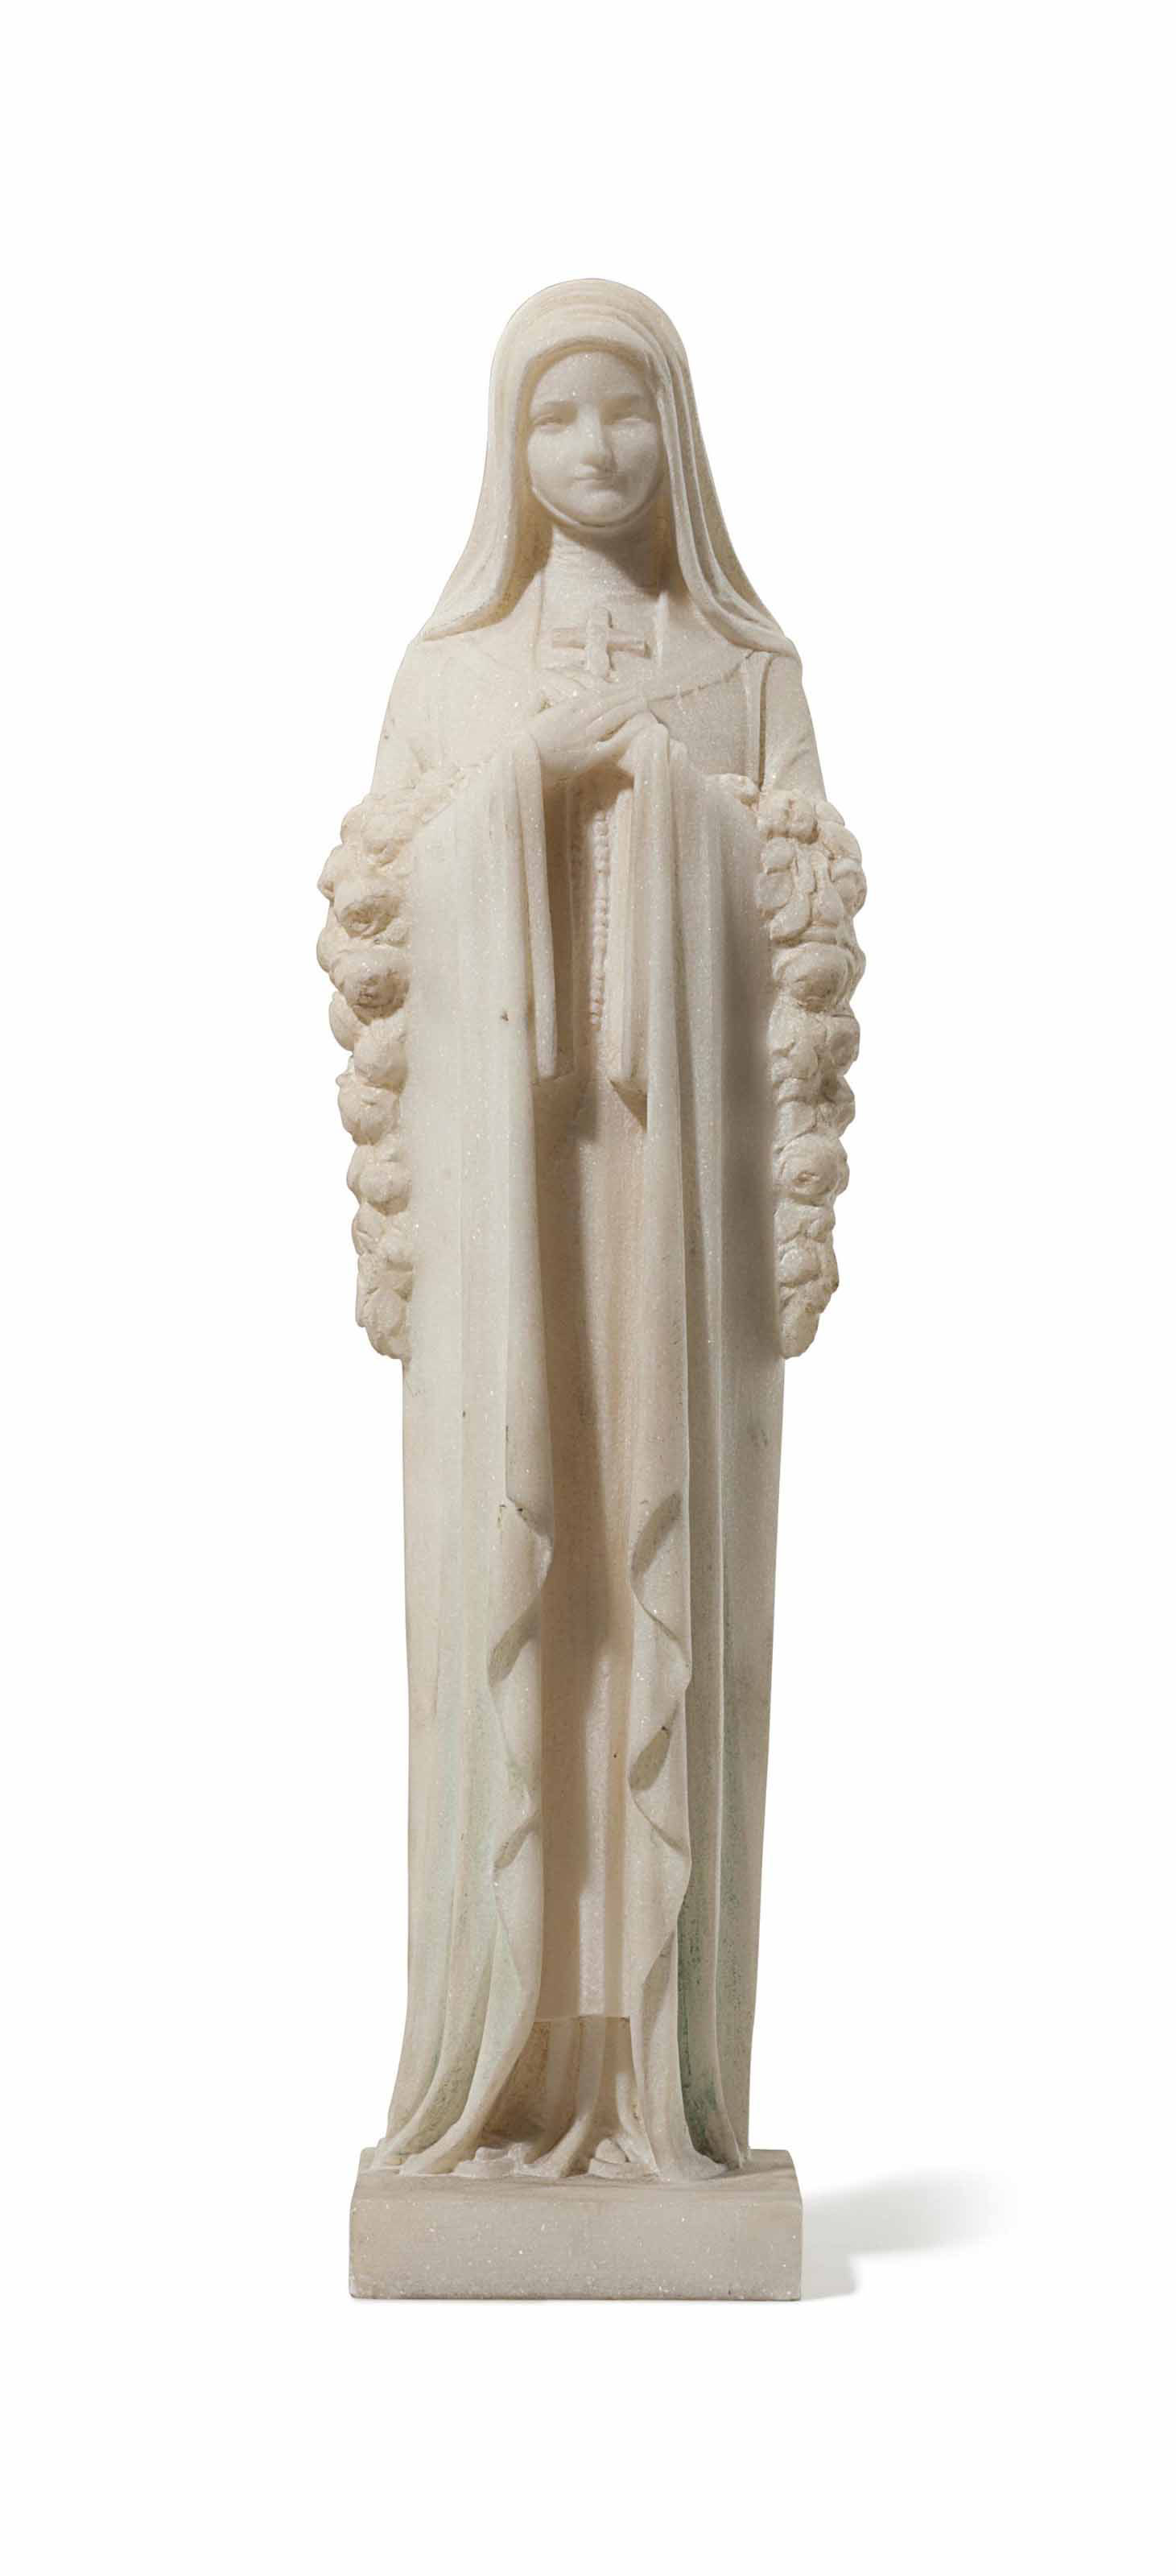 The Virgin Mary, standing